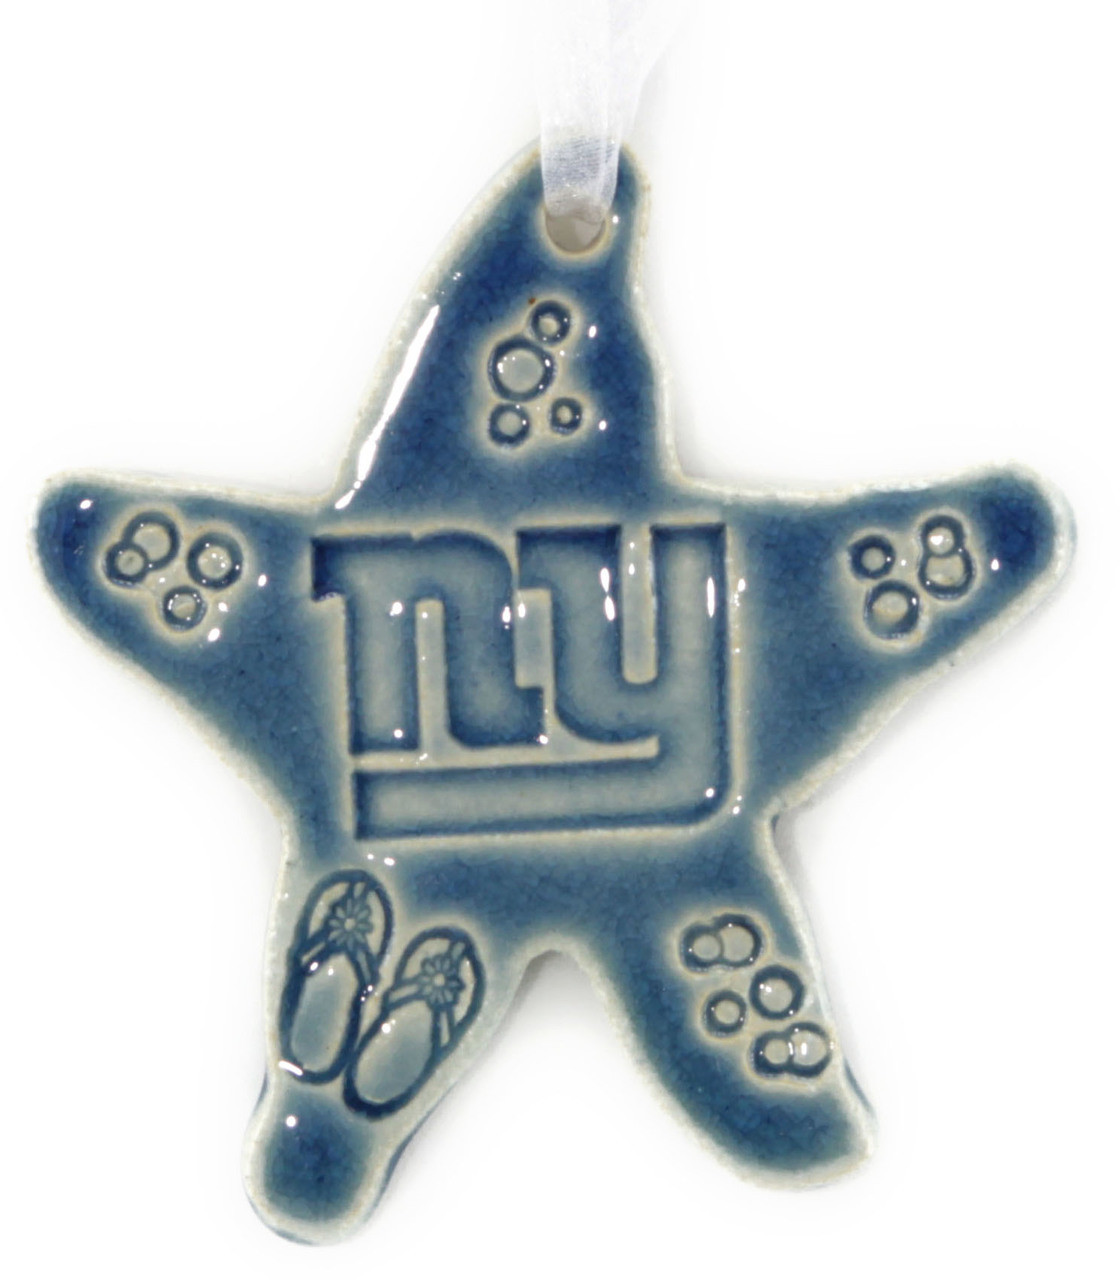 NY Giants - Peaceramics